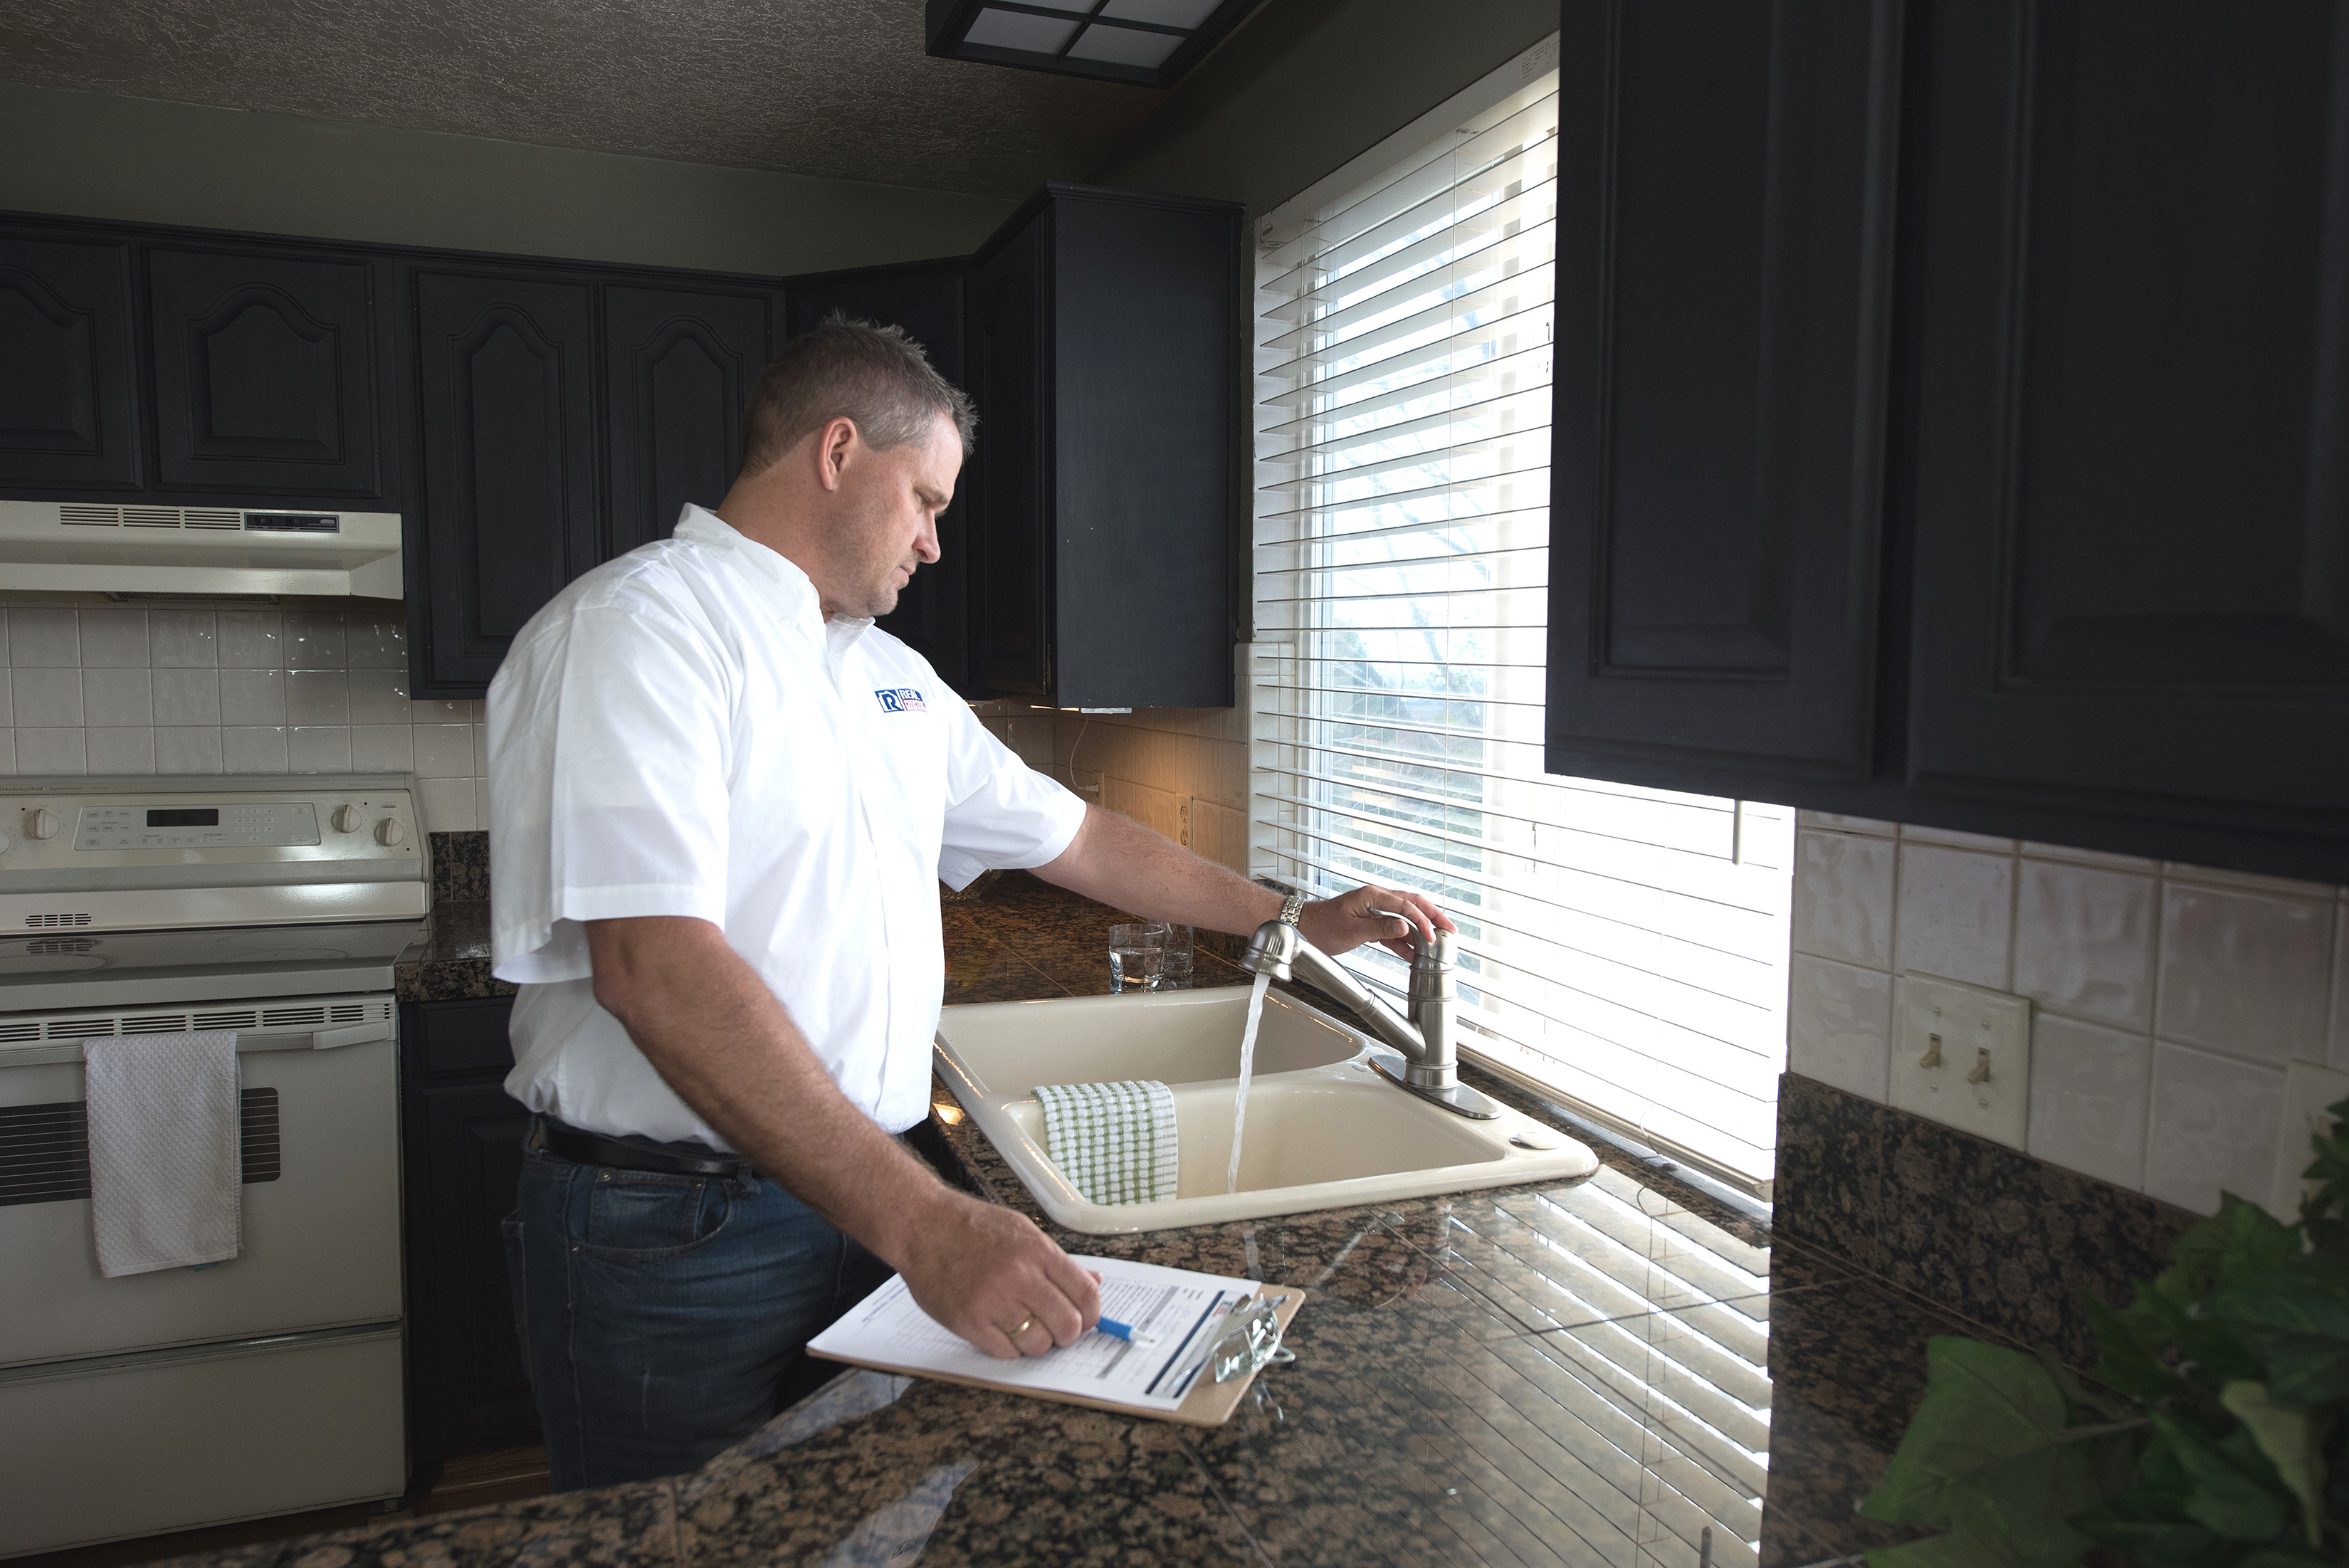 Real Property Management Greater Milwaukee Suburbs staff inspecting the sink